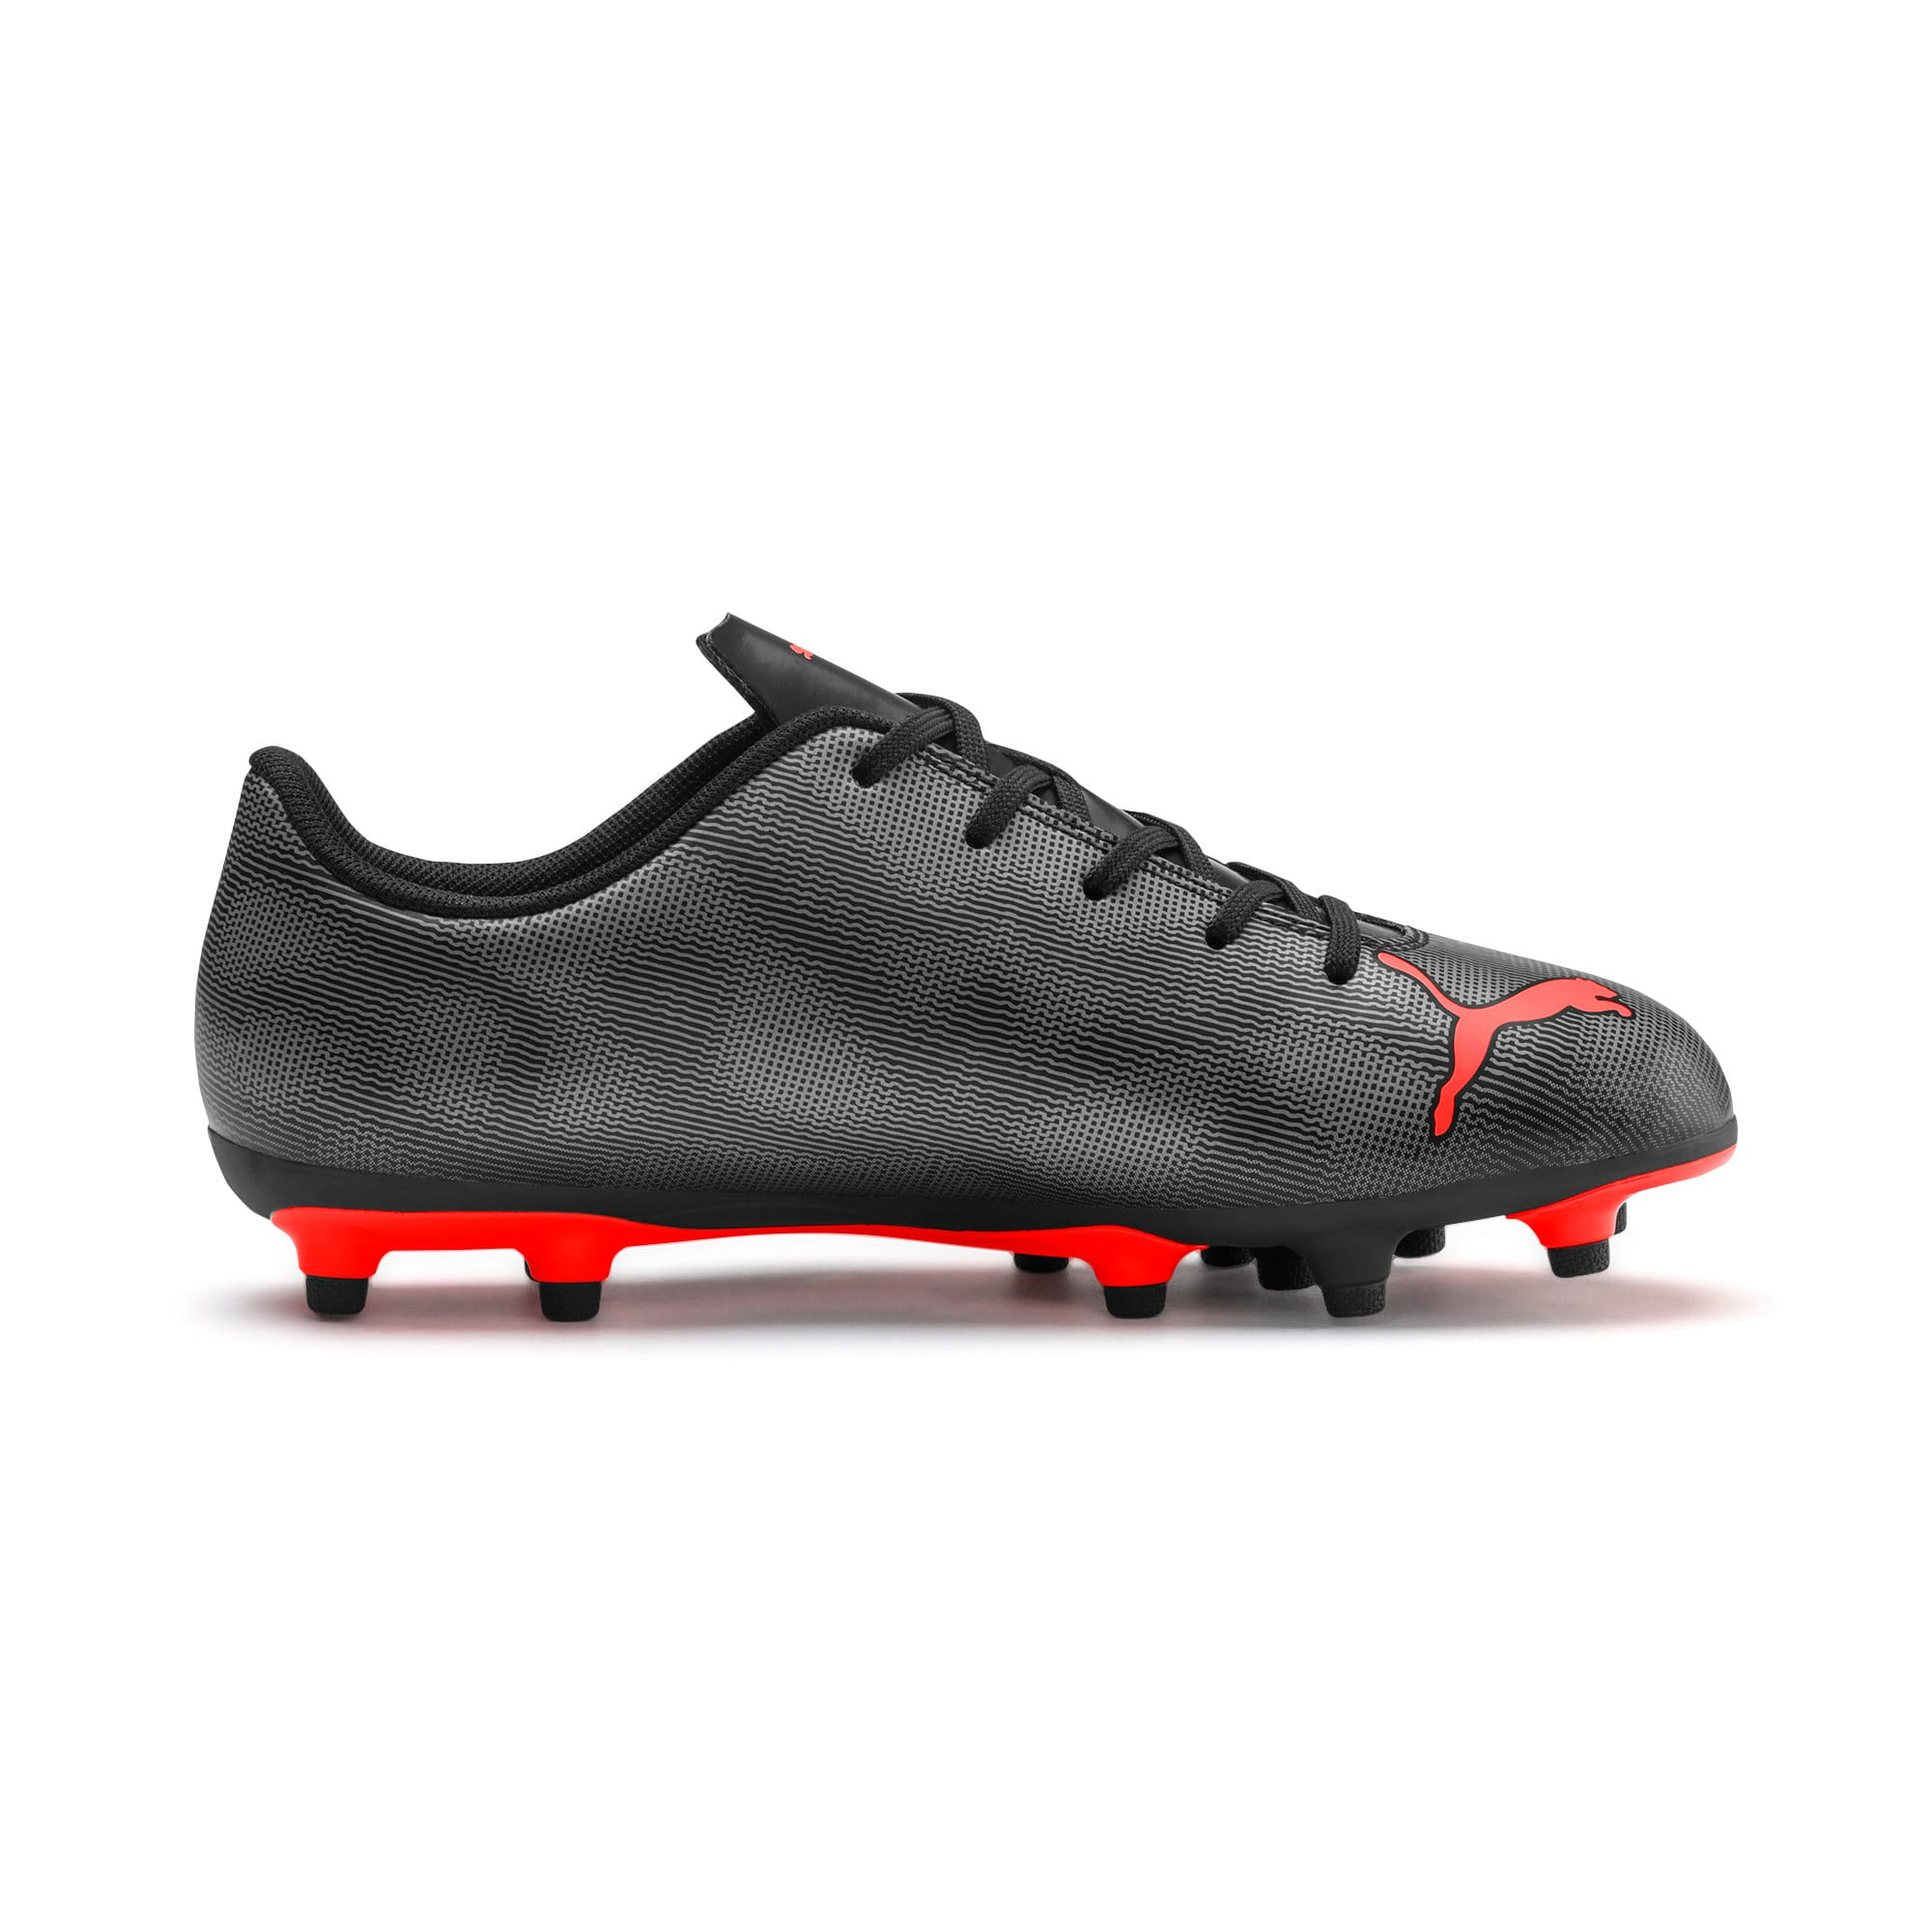 Thumbnail 5 of Rapido FG Youth Football Boots, Black-Nrgy Red-Aged Silver, medium-IND